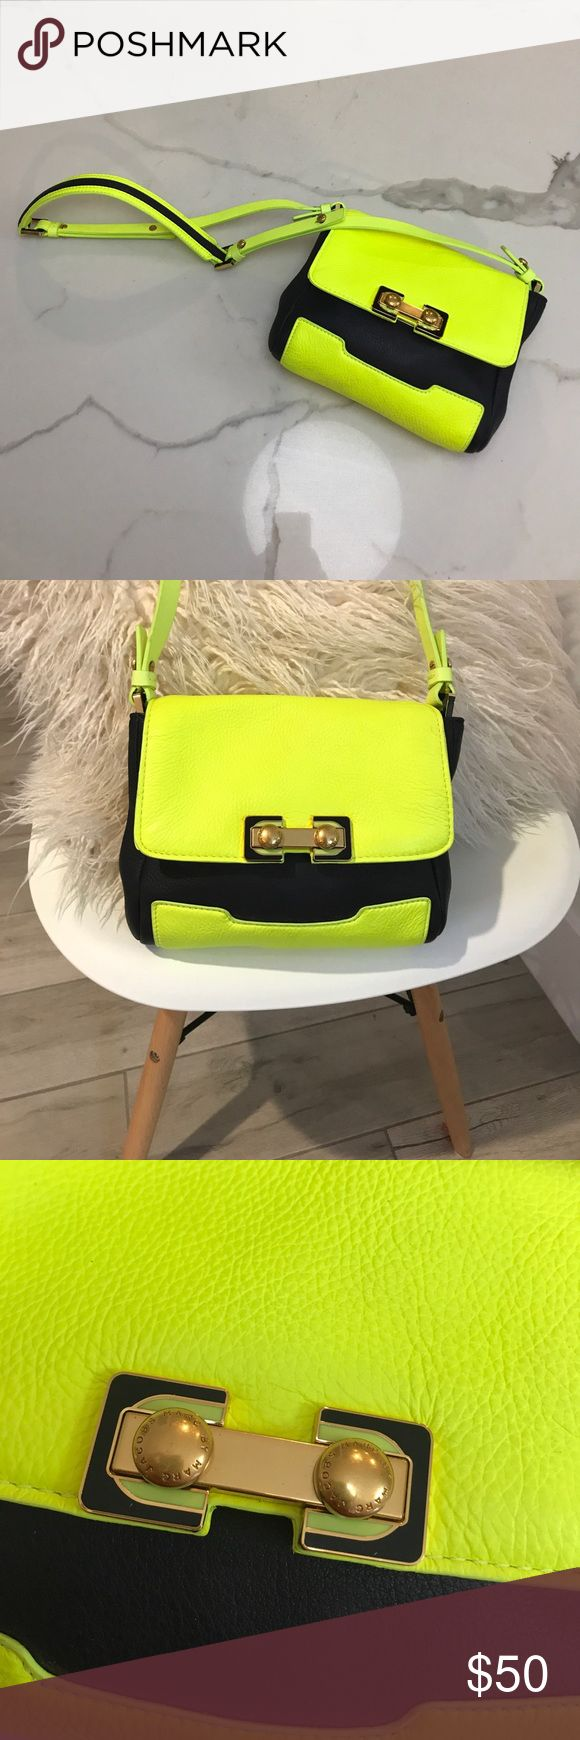 Marc Jacobs navy blue/neon yellow purse! Marc Jacobs navy blue/neon yellow purse! Authentic, worn once! Great condition! Marc Jacobs Bags Crossbody Bags